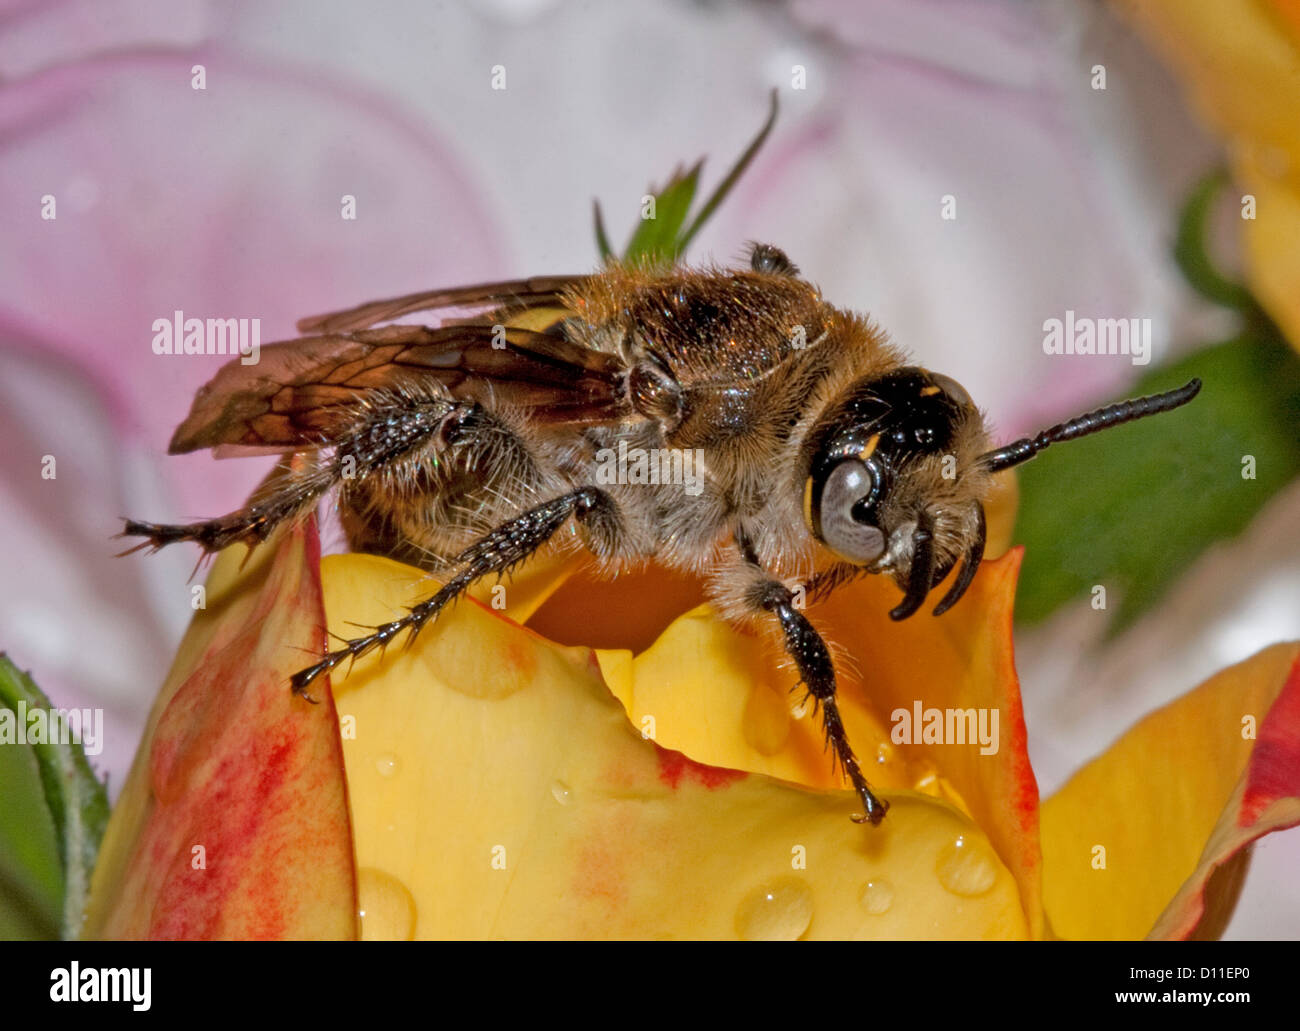 Flower wasp, beneficial predatory insect, on yellow rose bud,macro shot - Stock Image